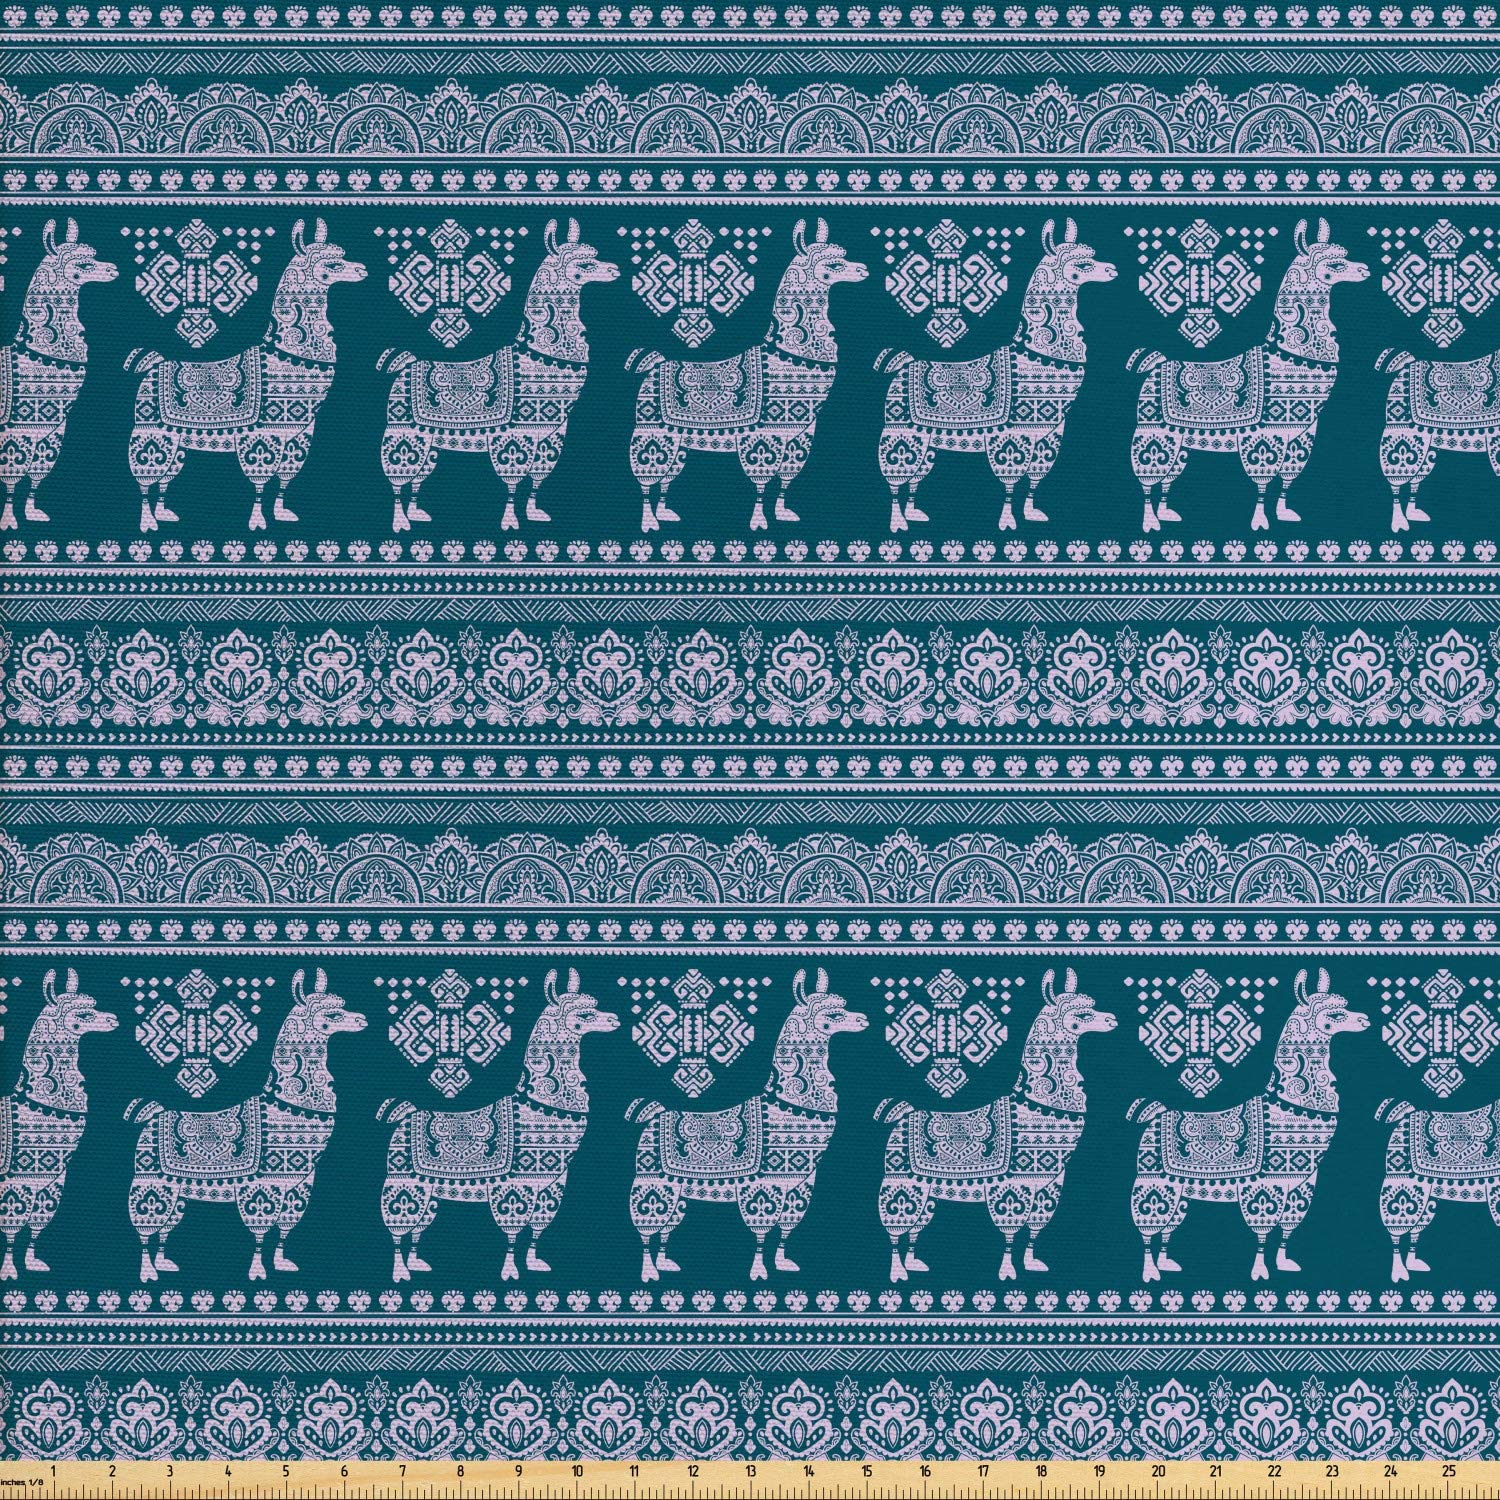 Ambesonne Ethnic Fabric by The Yard, Alpaca Llama South American Ornaments Animal Art Pattern, Decorative Fabric for Upholstery and Home Accents, 1 Yard, Dark Teal Pastel Purple